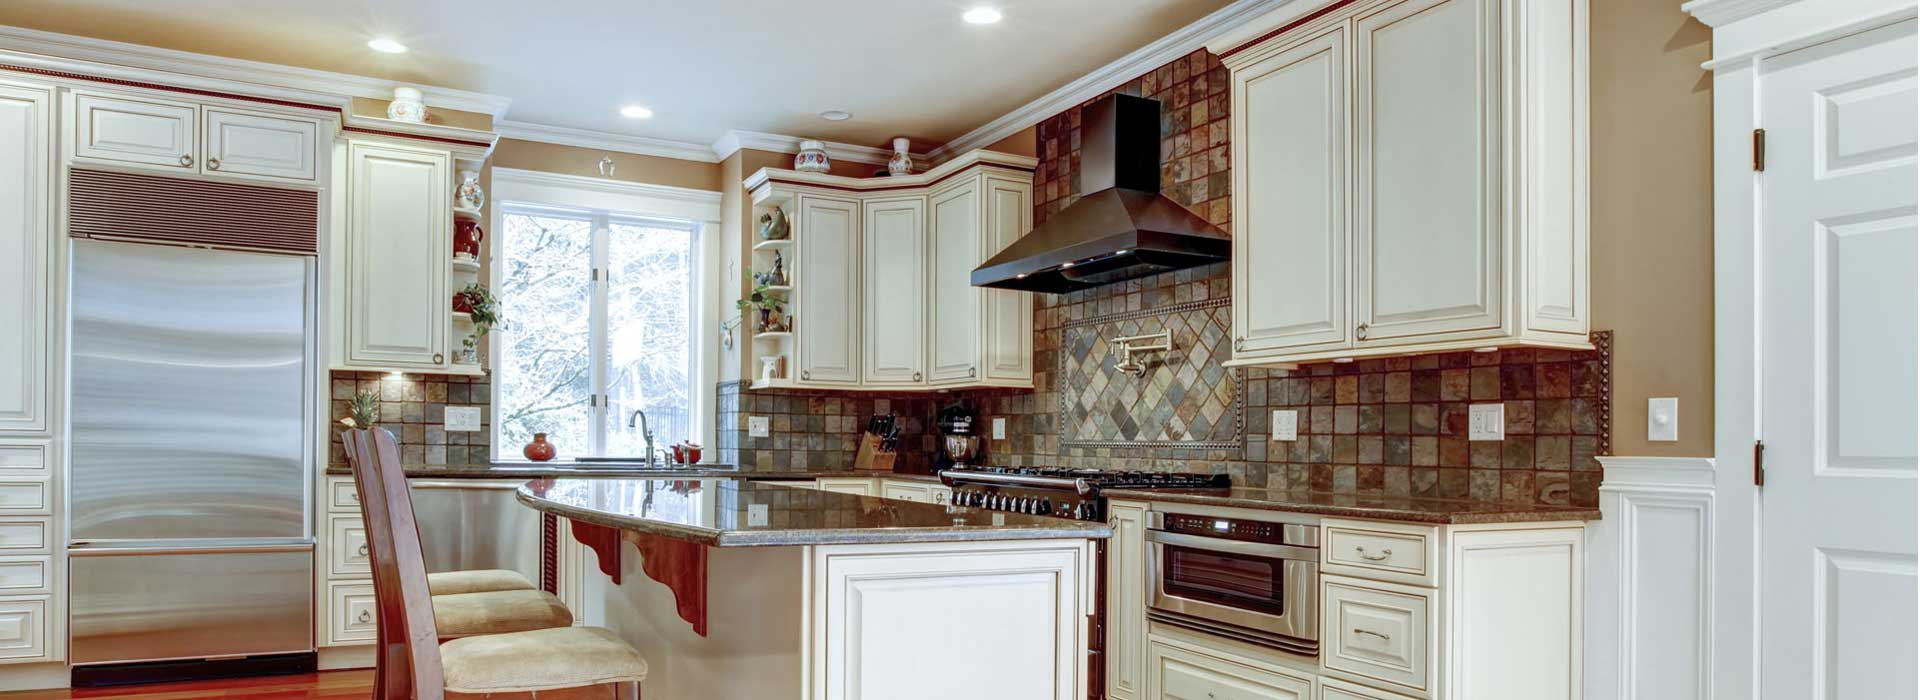 kitchen cabinets doors only lights for cabinet refacing - new look ny